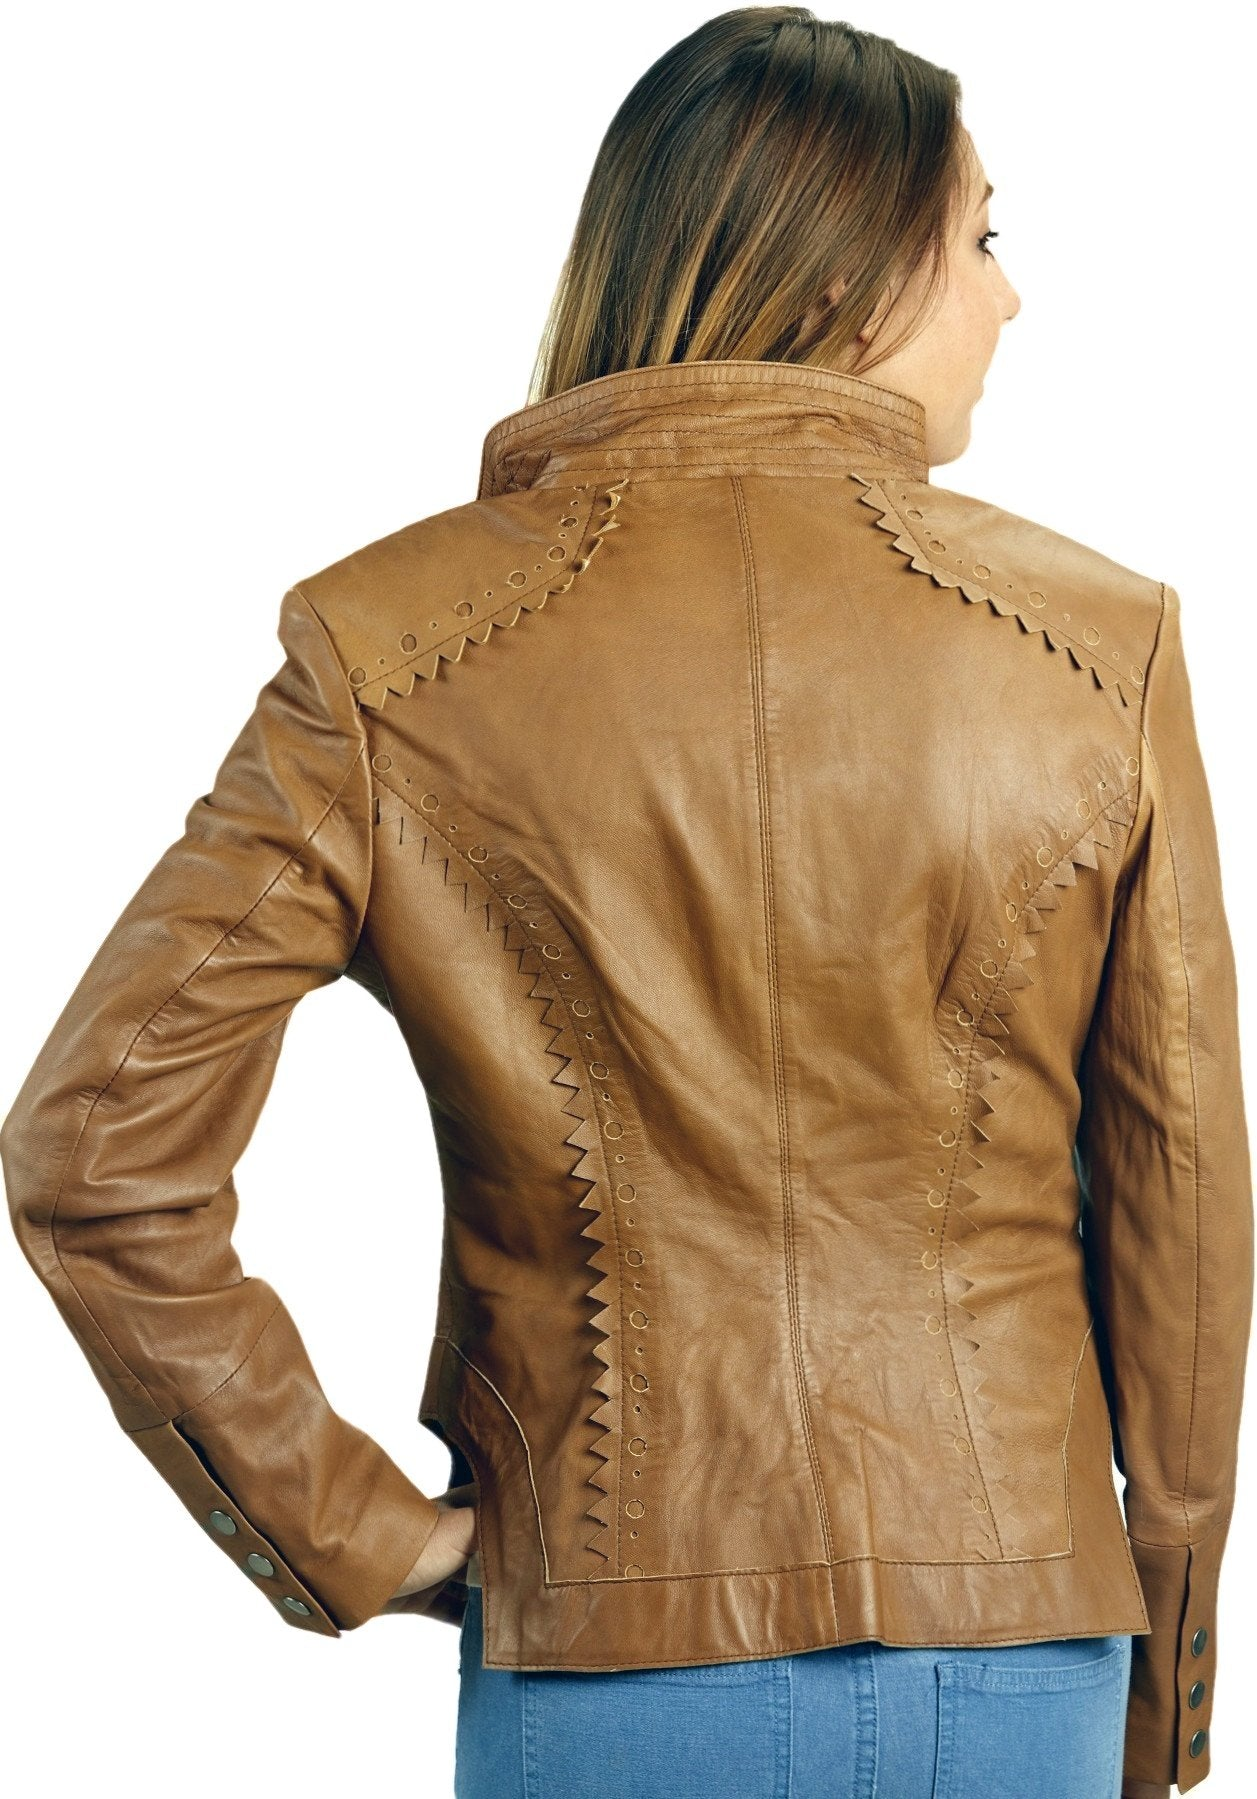 Womens Leather Jacket - Womens Sexy Tan Biker Cutwork Leather Jacket